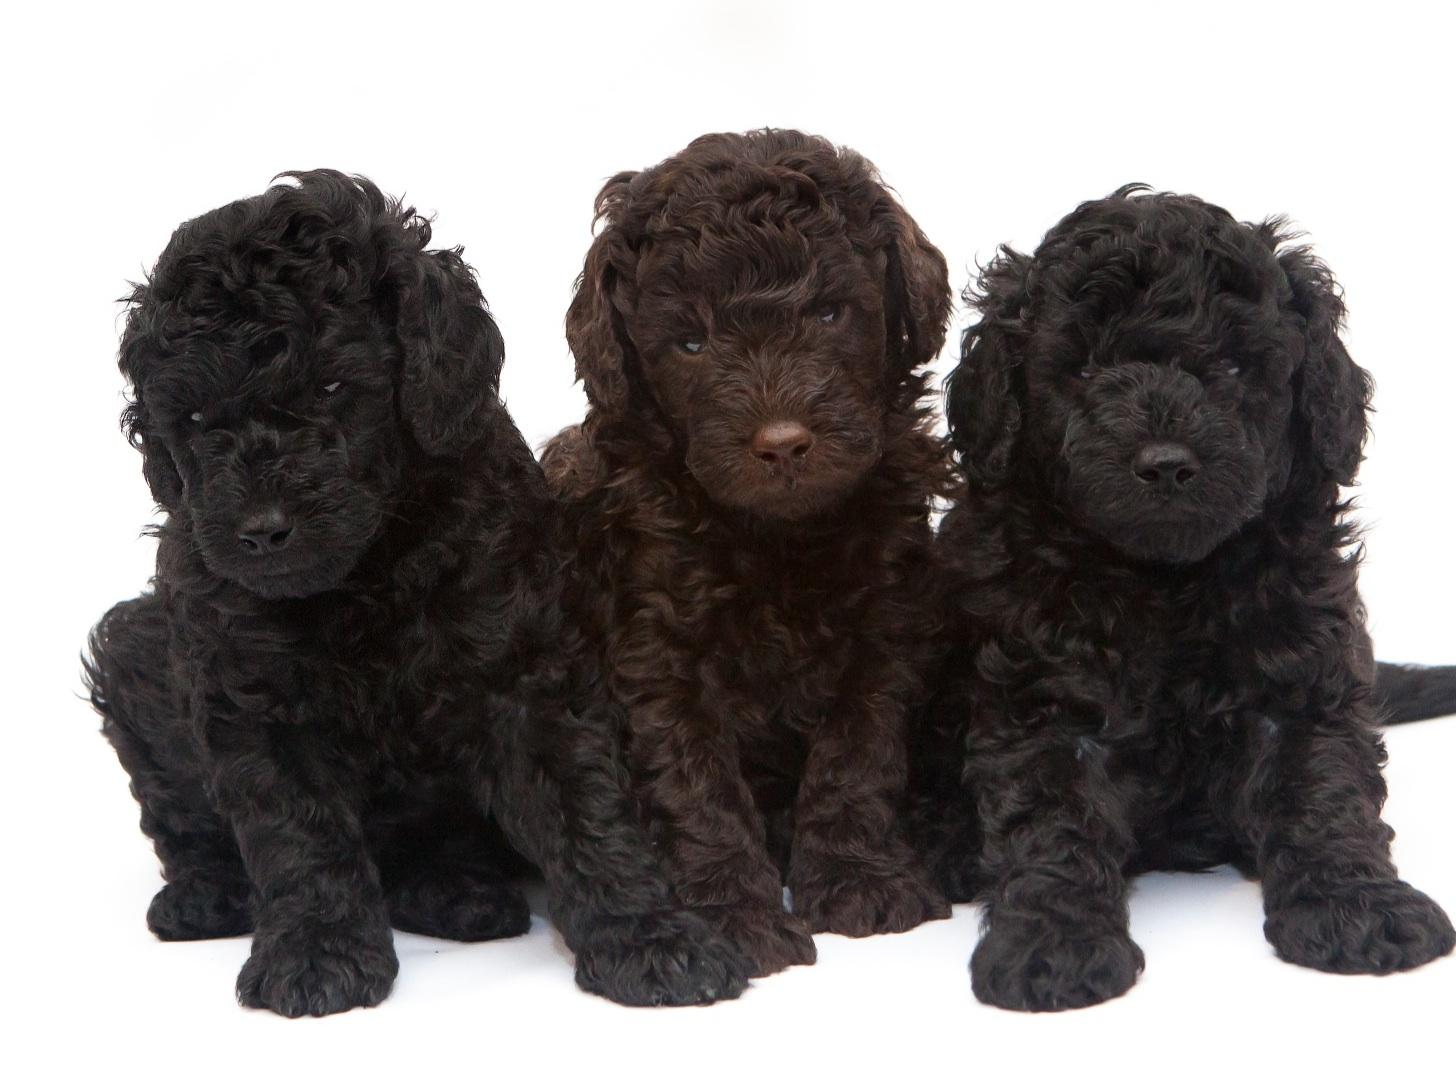 Standard Poodle Breeders Virginia Beach